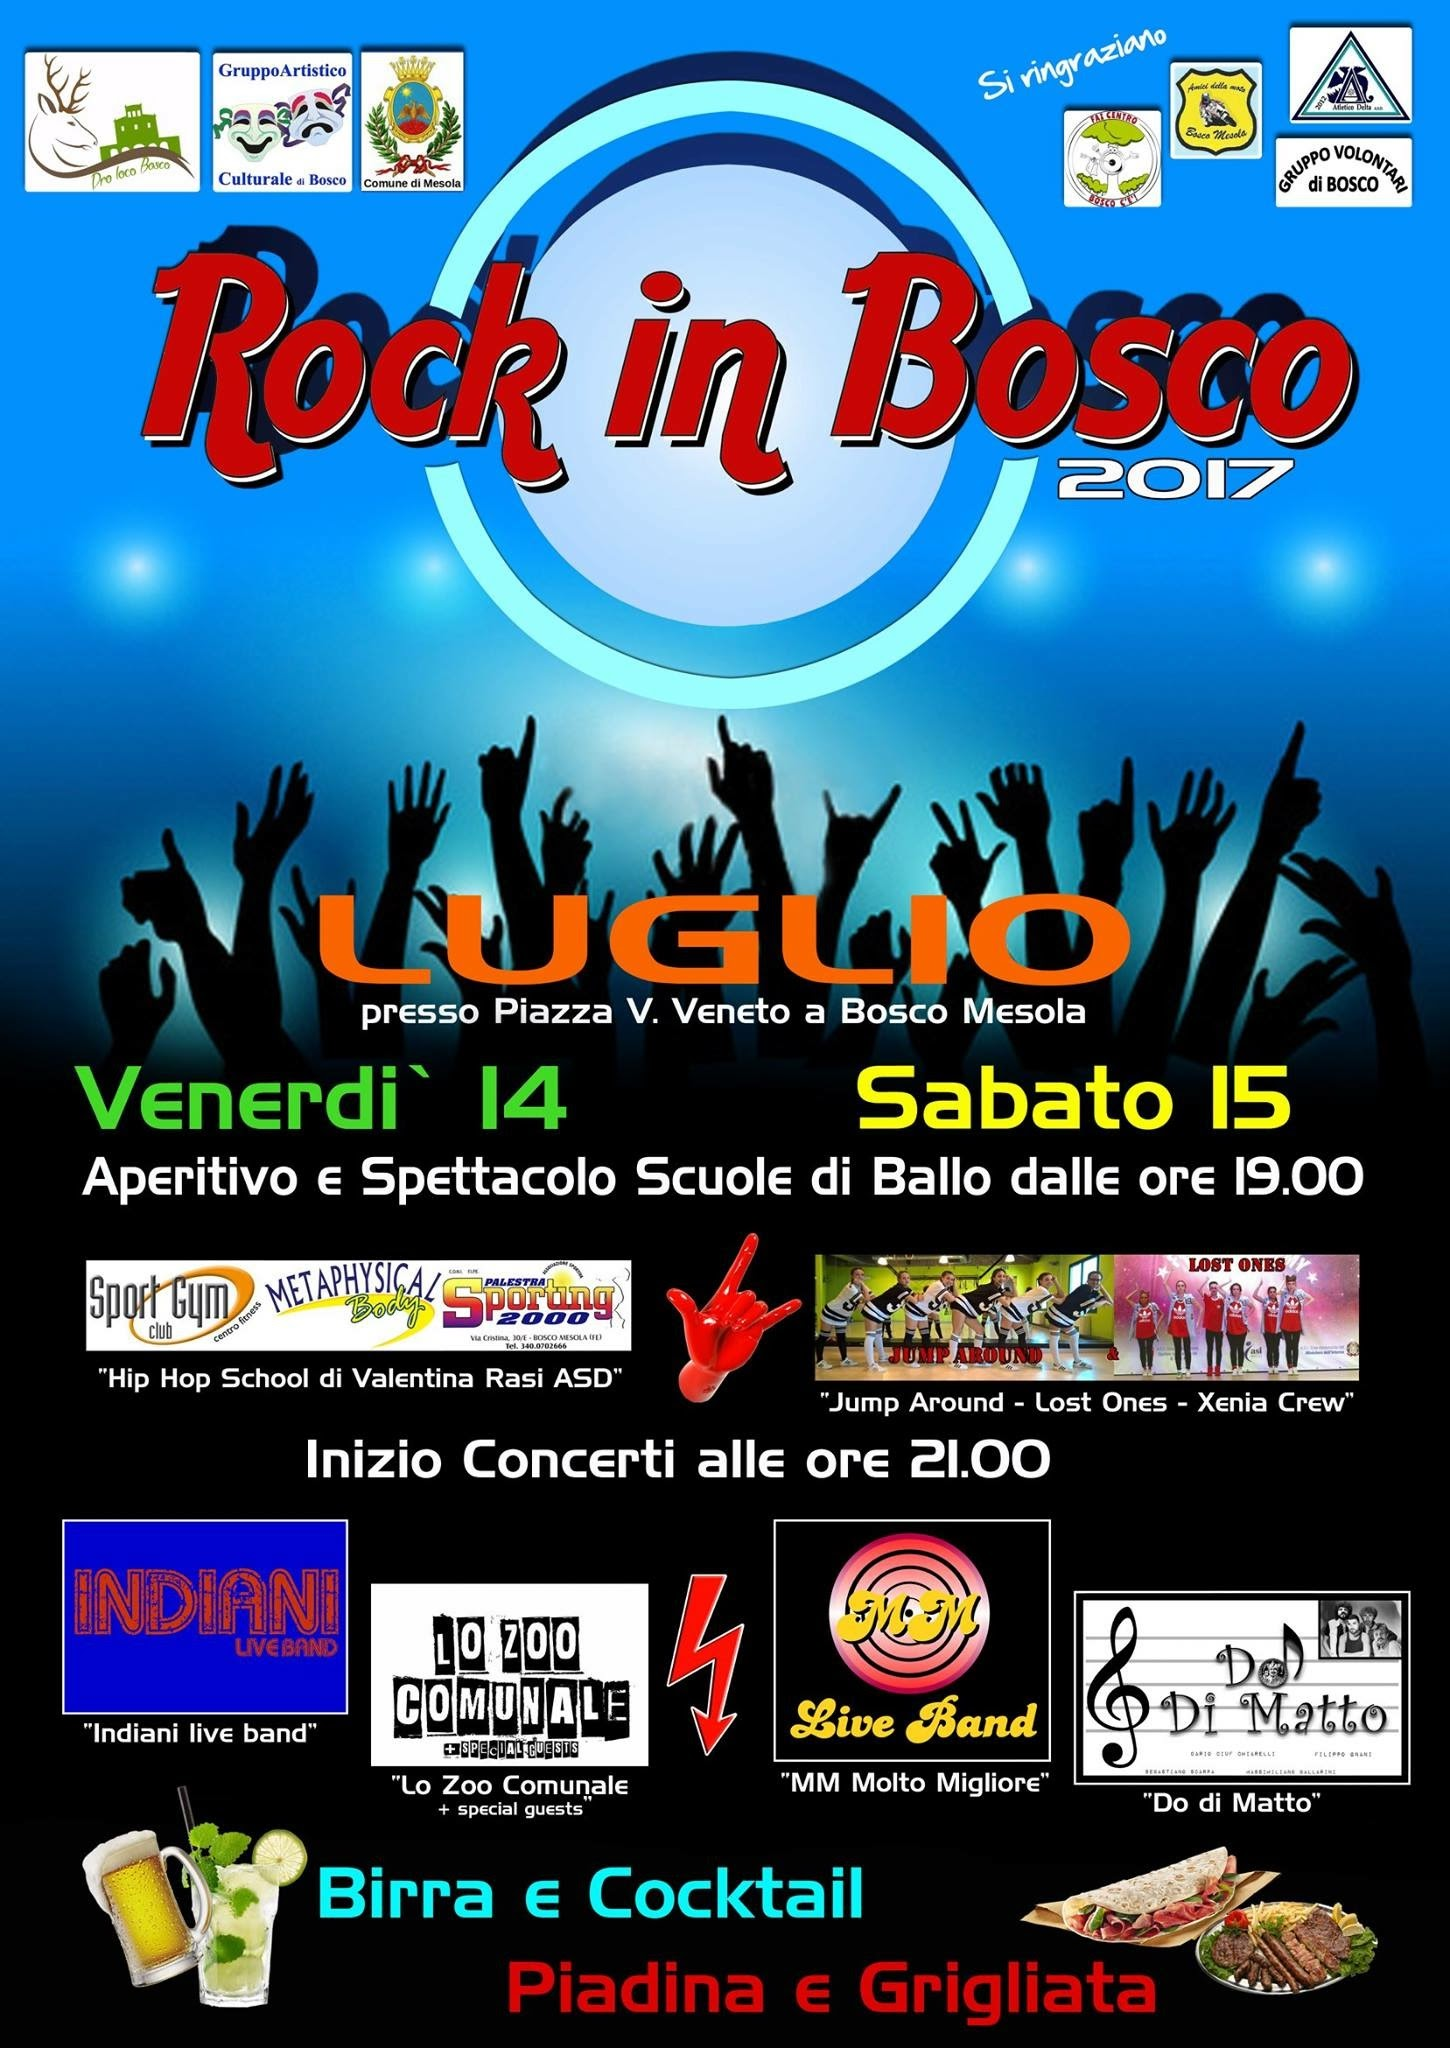 Rock in Bosco